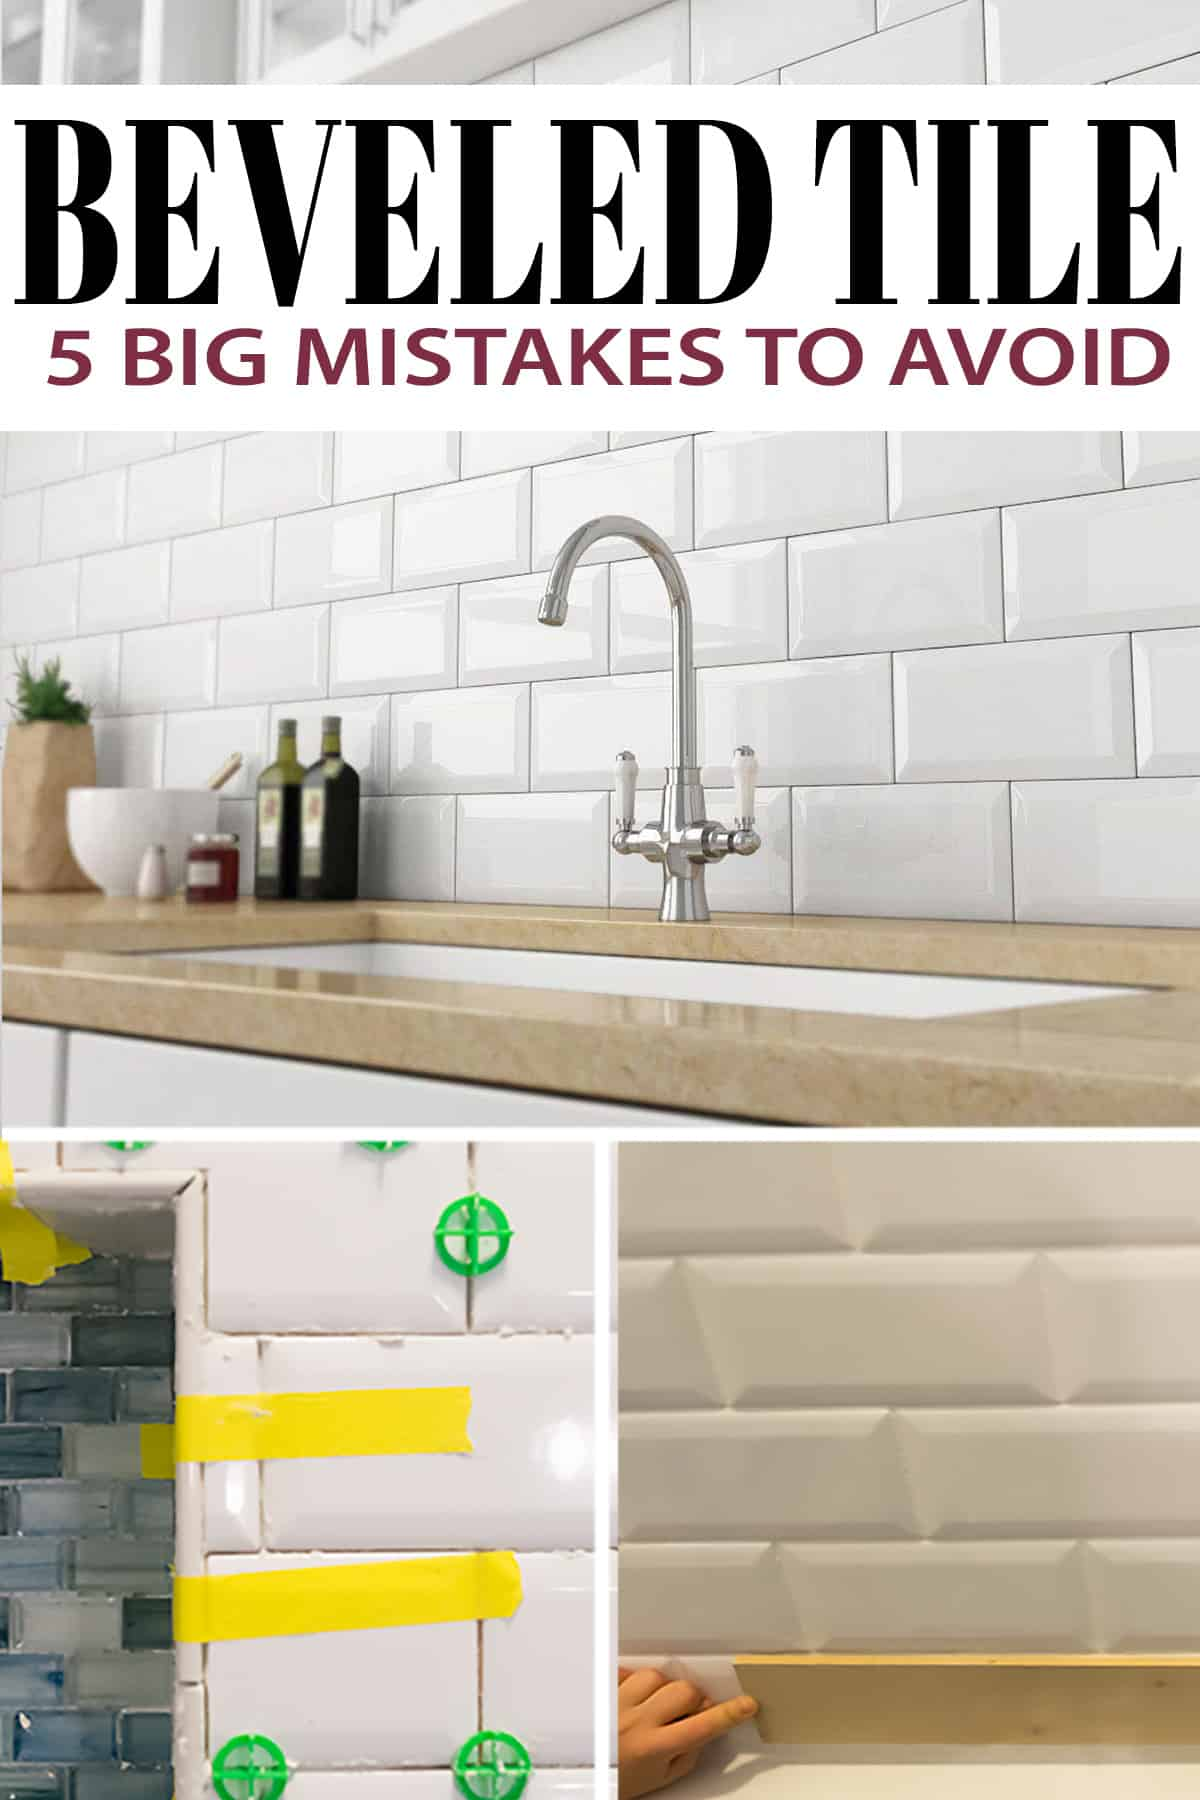 Beveled Tile Installation with mosaic tile inset tips and tricks with post title.